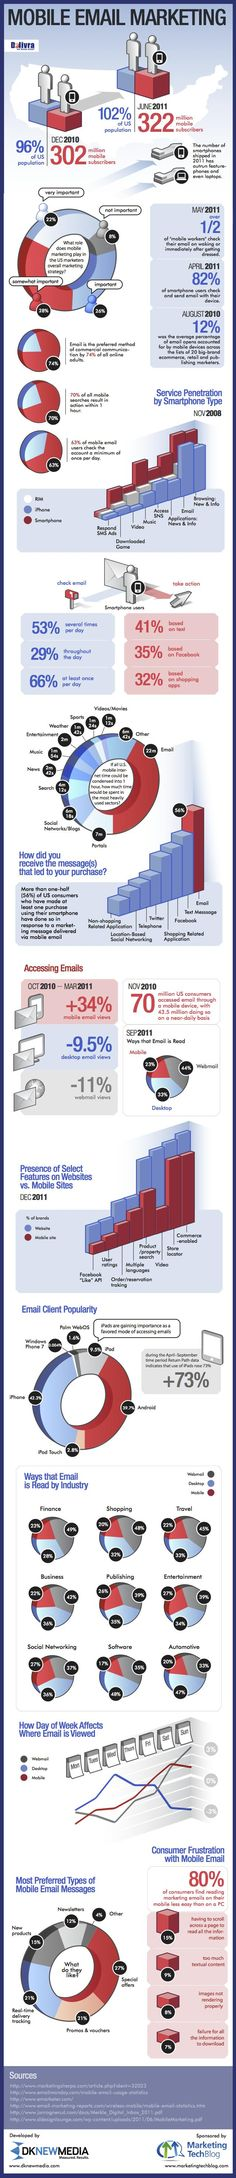 #Mobile #Email #Marketing #infographic